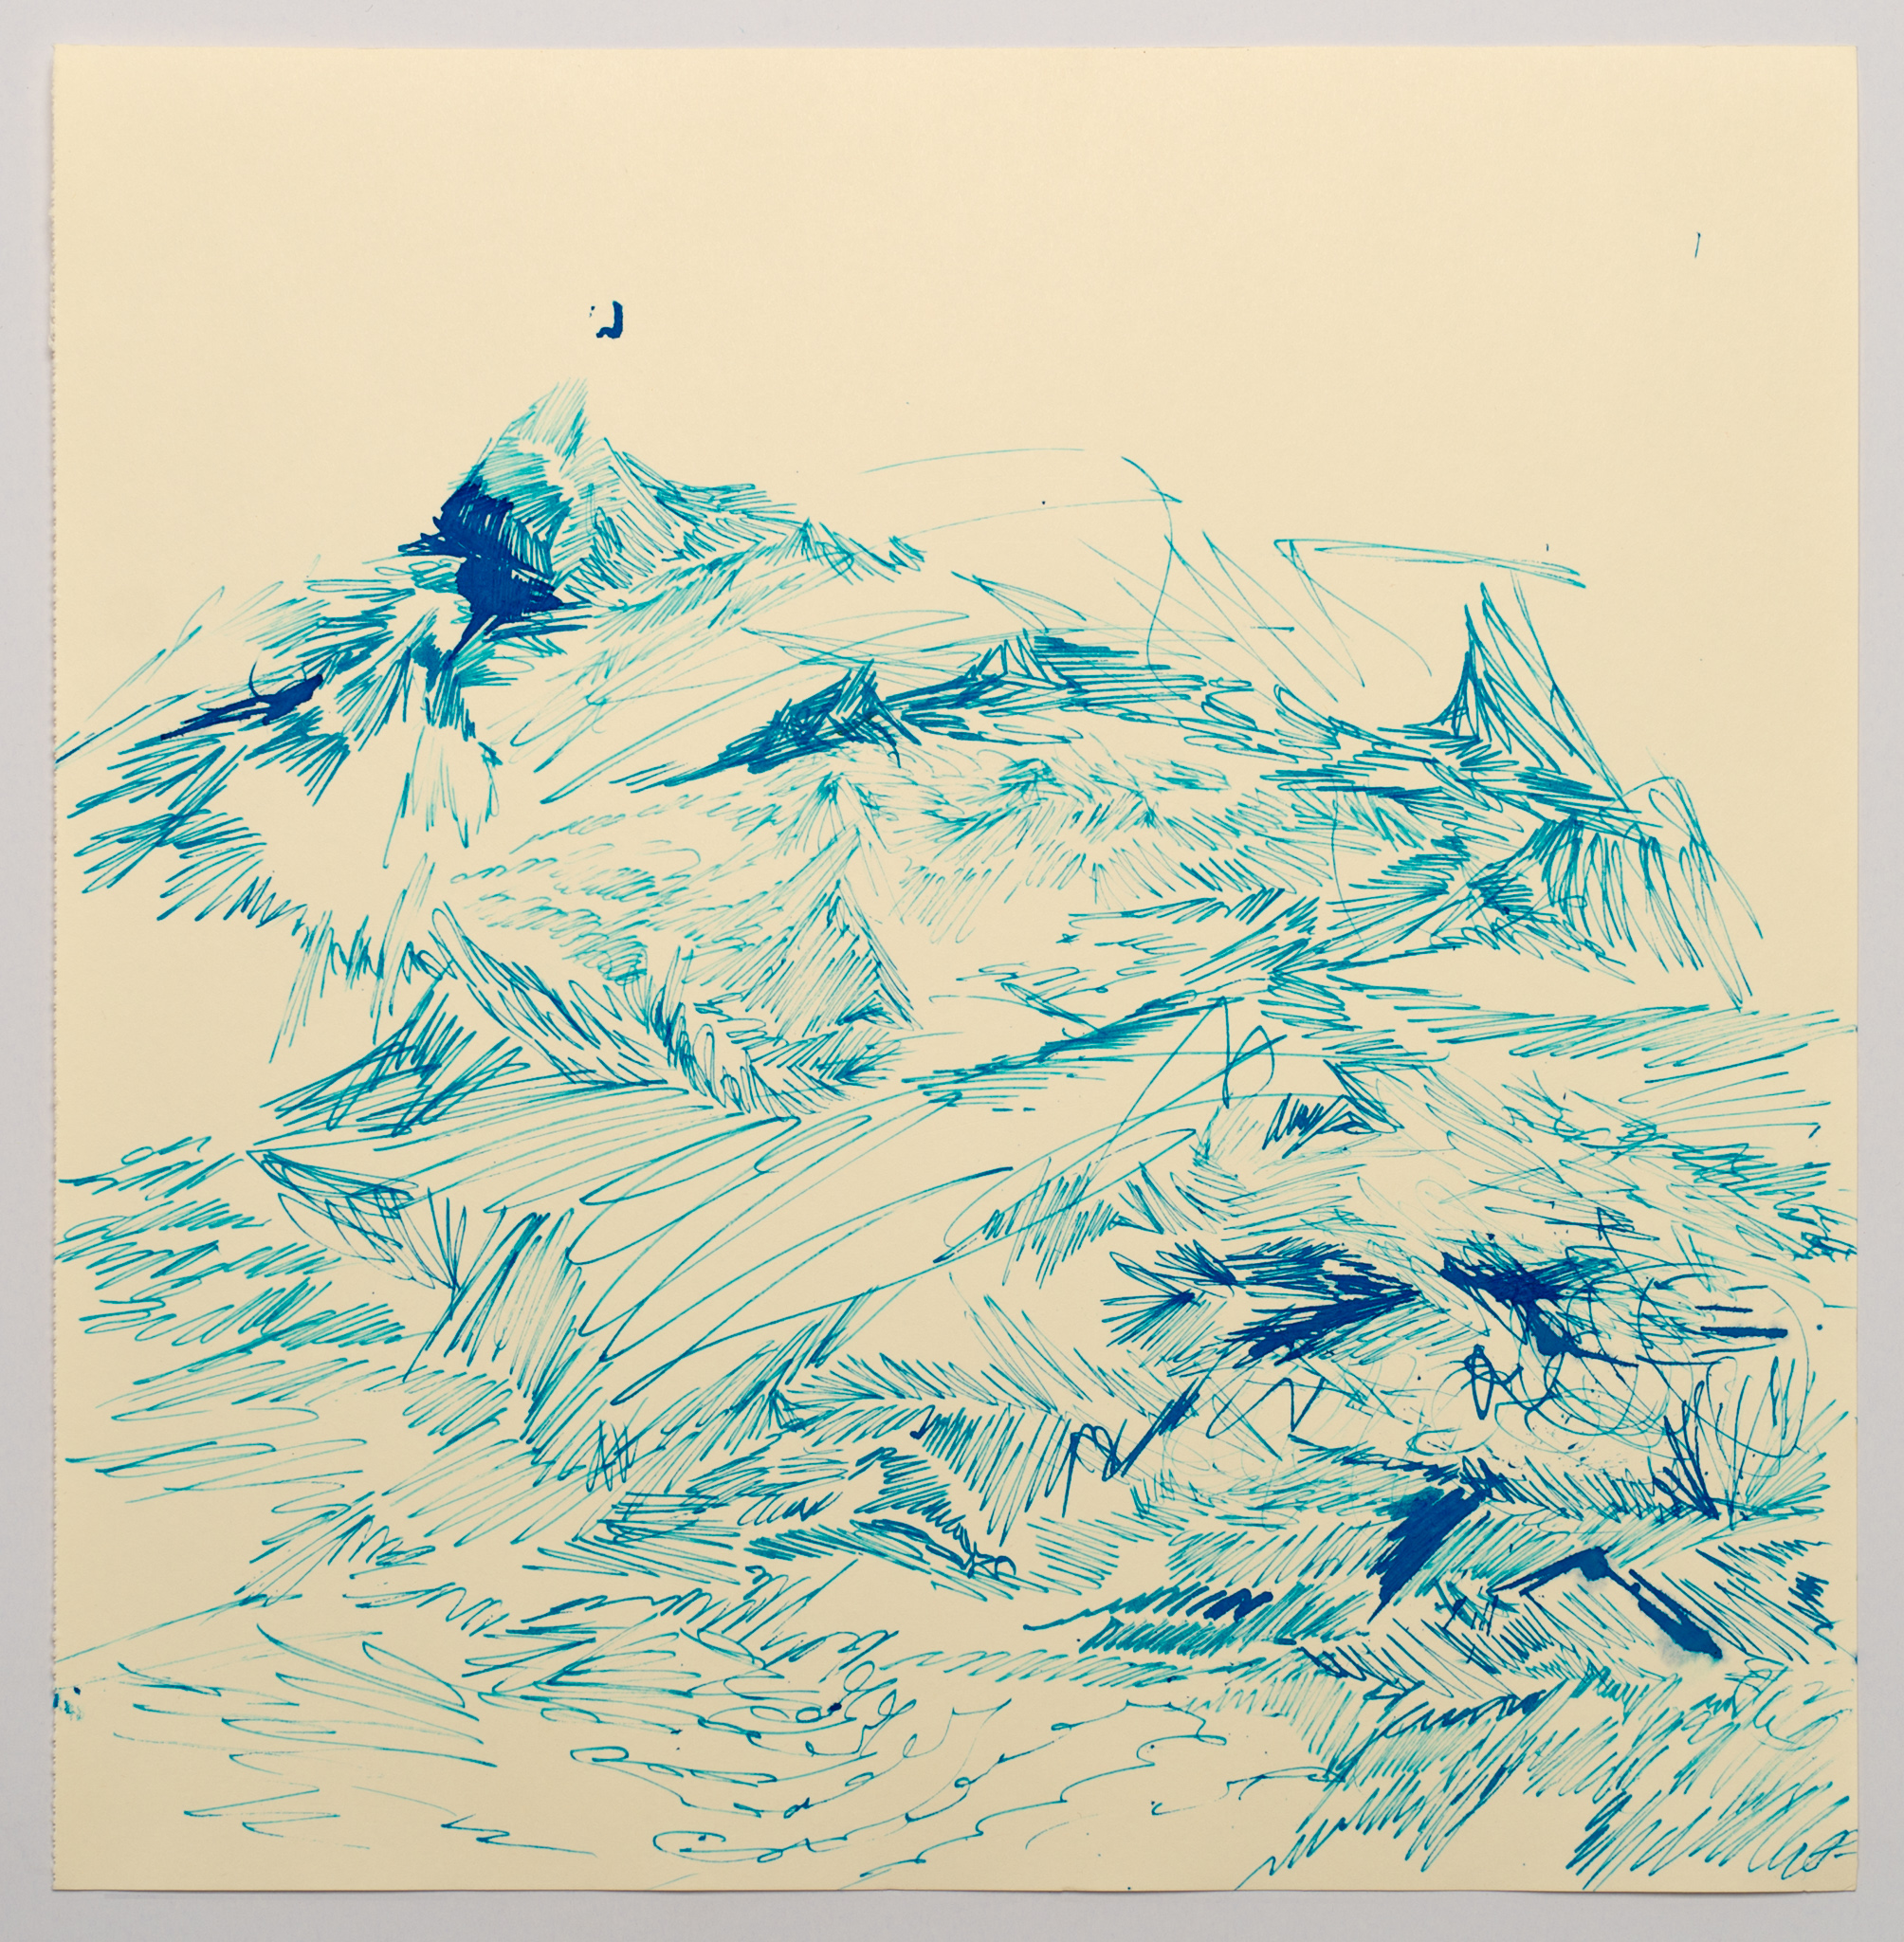 Laleh Khorramian,  Peaks 37 , 2019, Ink on paper, 12.5 x 12.75 inches (31.75 x 32.39 cm)